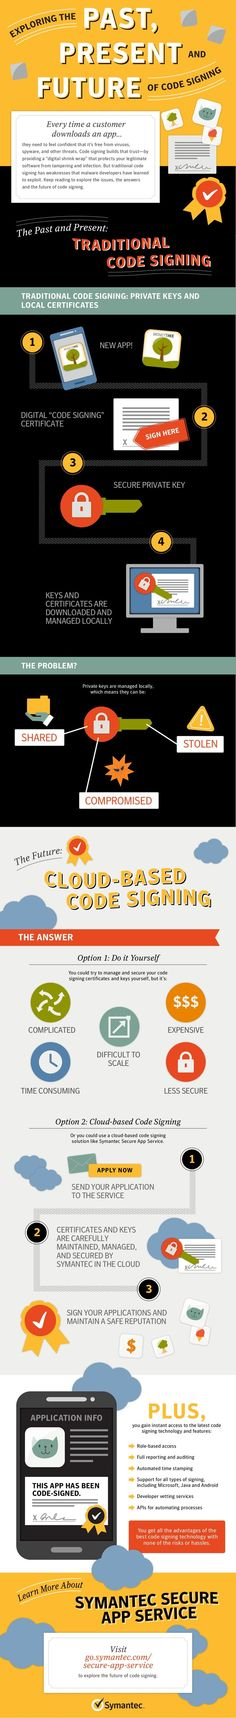 Exploring Past, Present and Future of Code Signing #infographic #Apps #CodeSigning